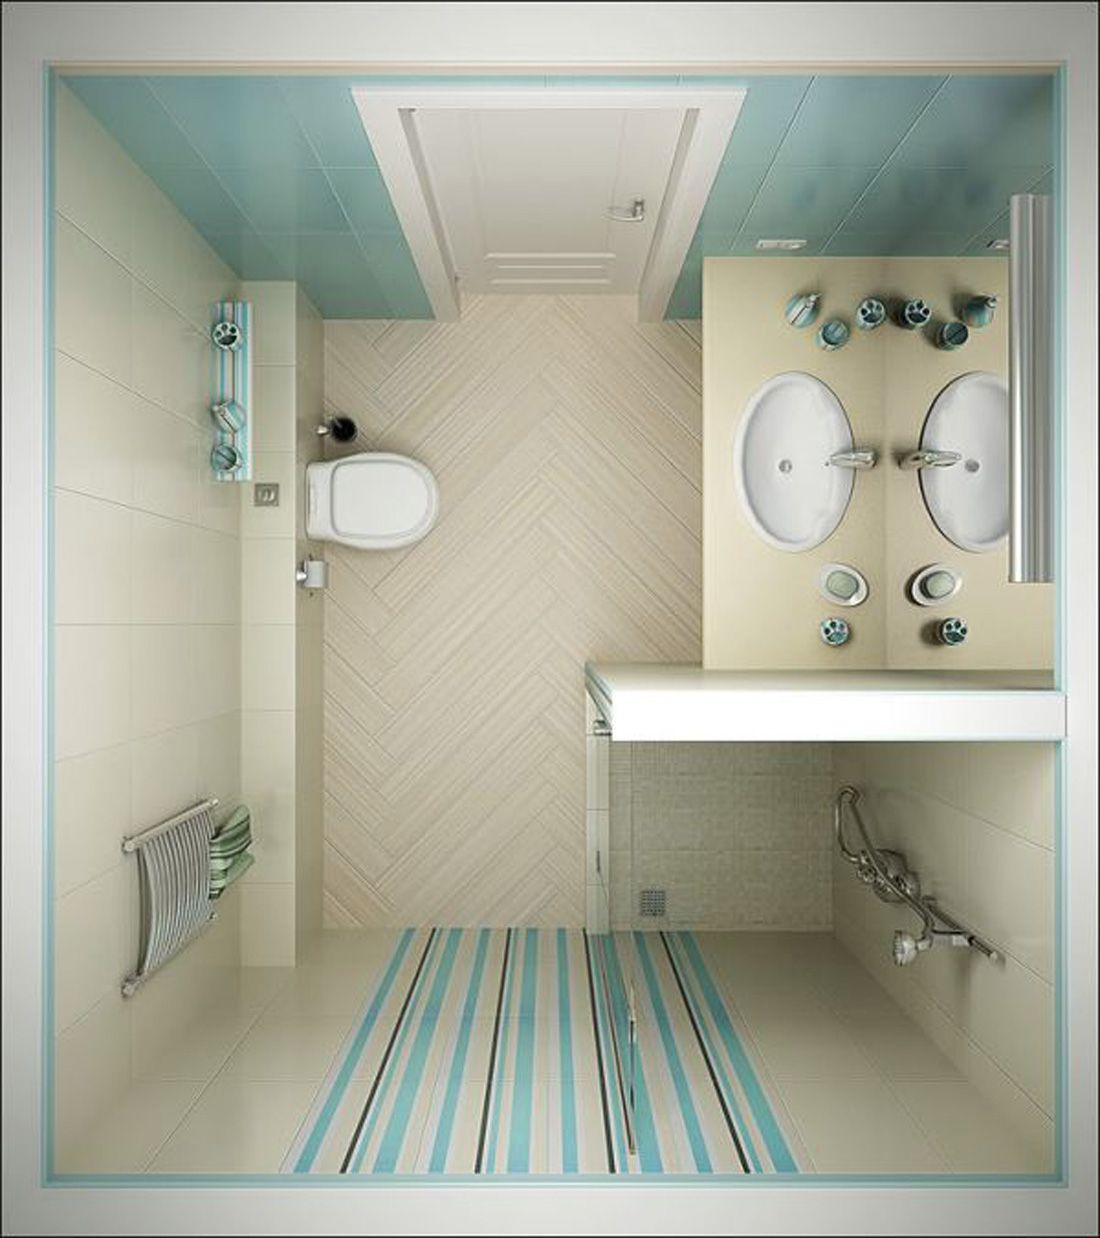 Micro bathroom with a shower | Bathroom decor in 2018 | Pinterest ...